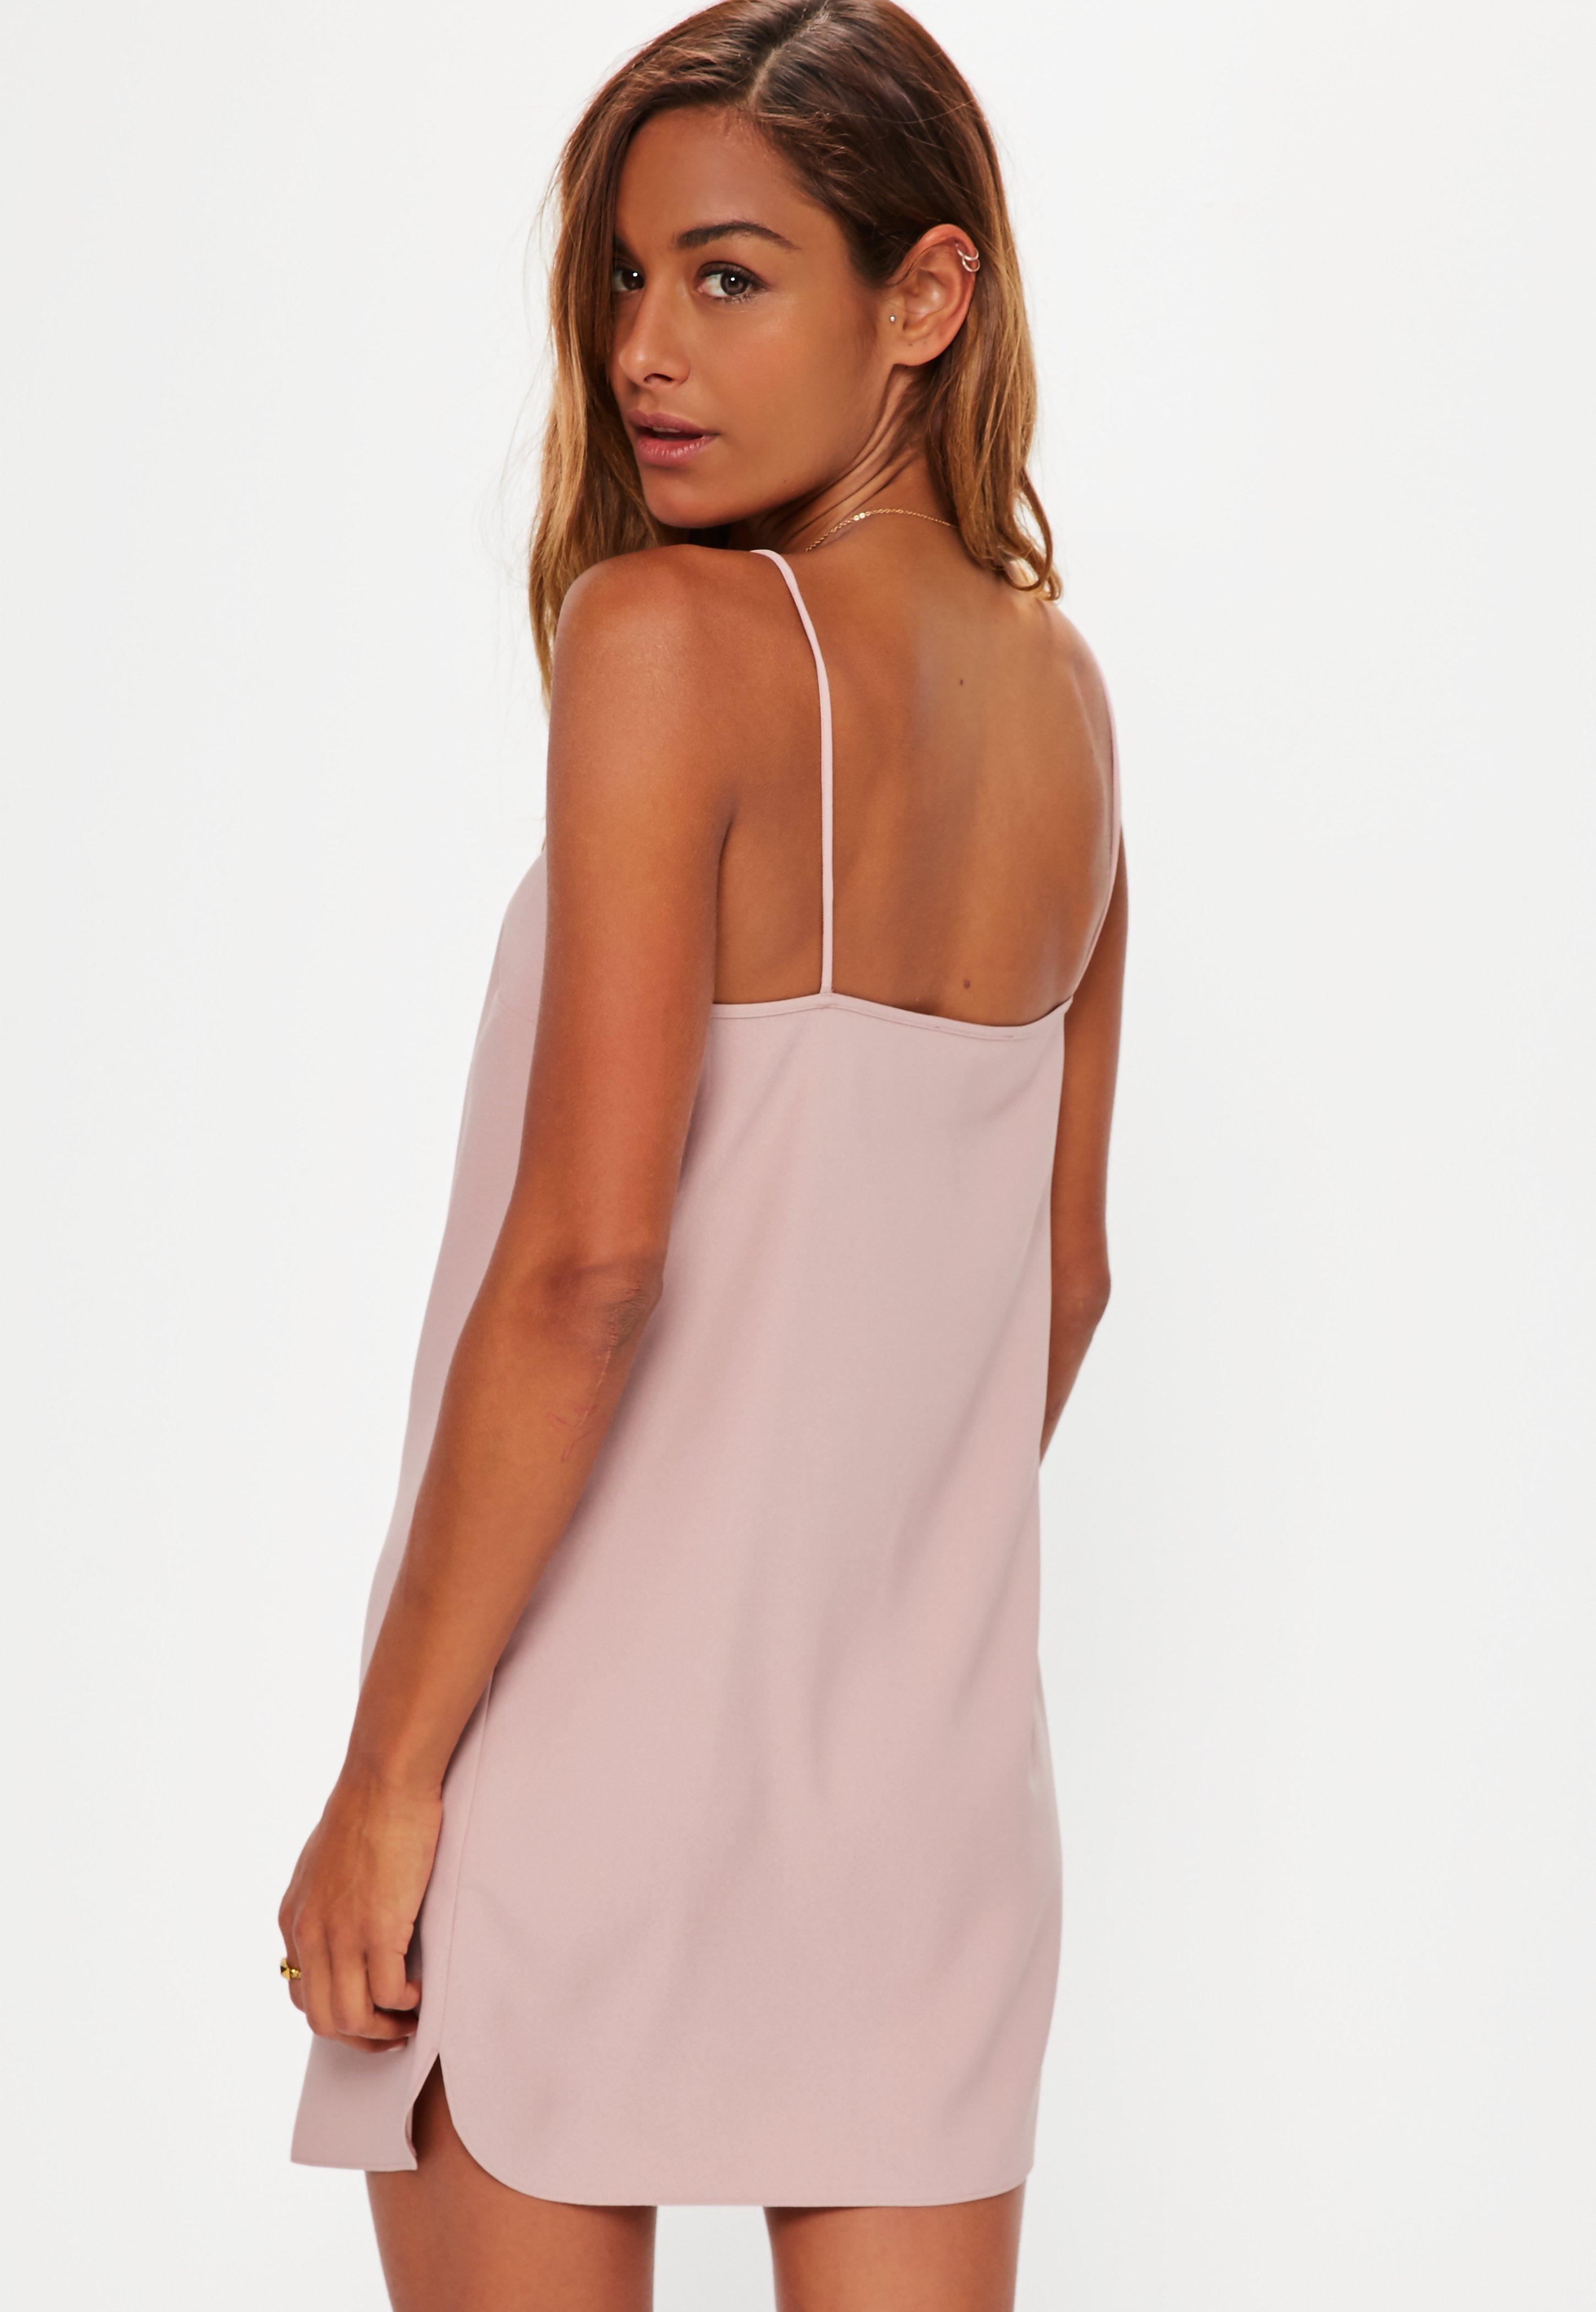 Missguided Cami Shift Dress 2018 Cheap Online Discount Prices 6YjN8